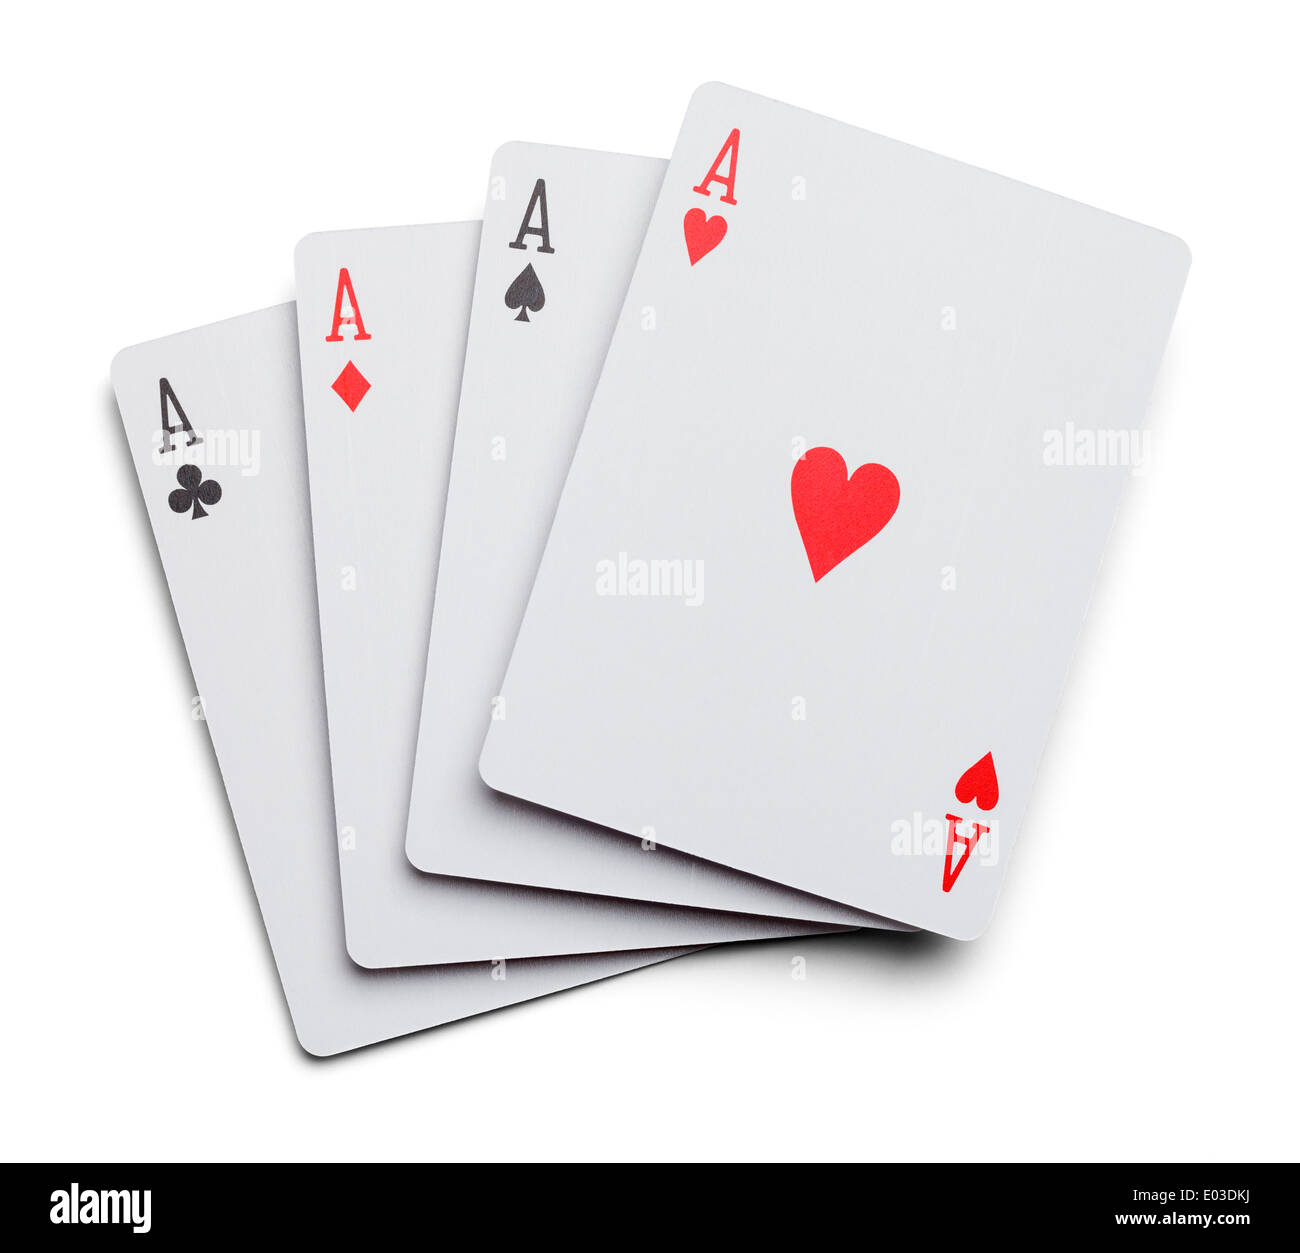 Four Aces Playing Cards Isolated On White Background. - Stock Image